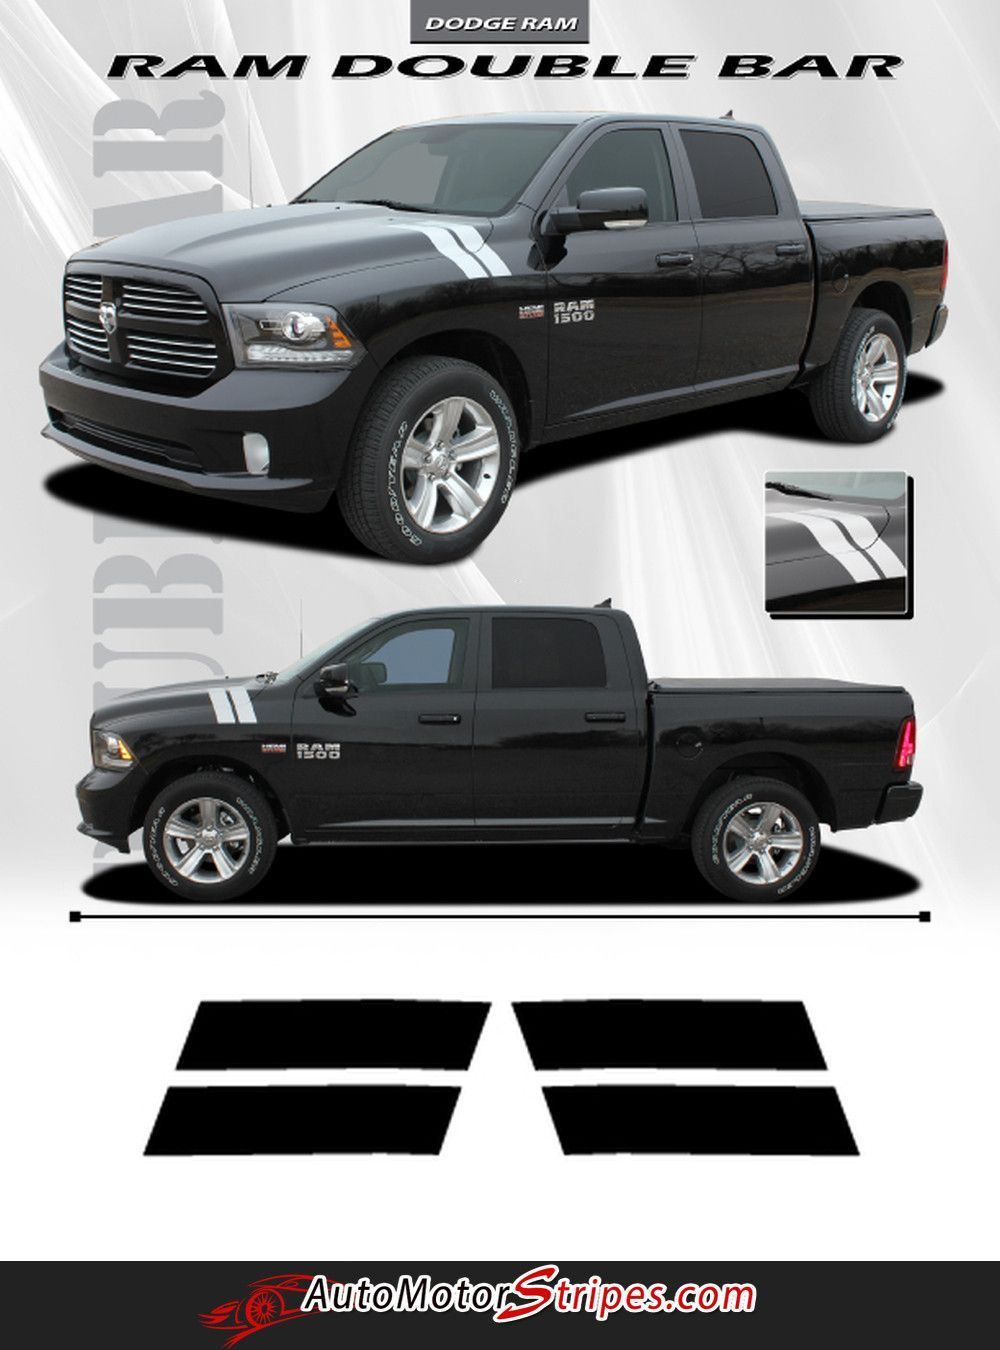 2009 2018 Dodge Ram Hash Marks Double Bar Truck Hood Fender Vinyl 2012 1500 Break Lights Vehicle Specific Style Graphic Stripe Decals Year Fitment 2010 2011 2013 2014 2015 2016 Contents